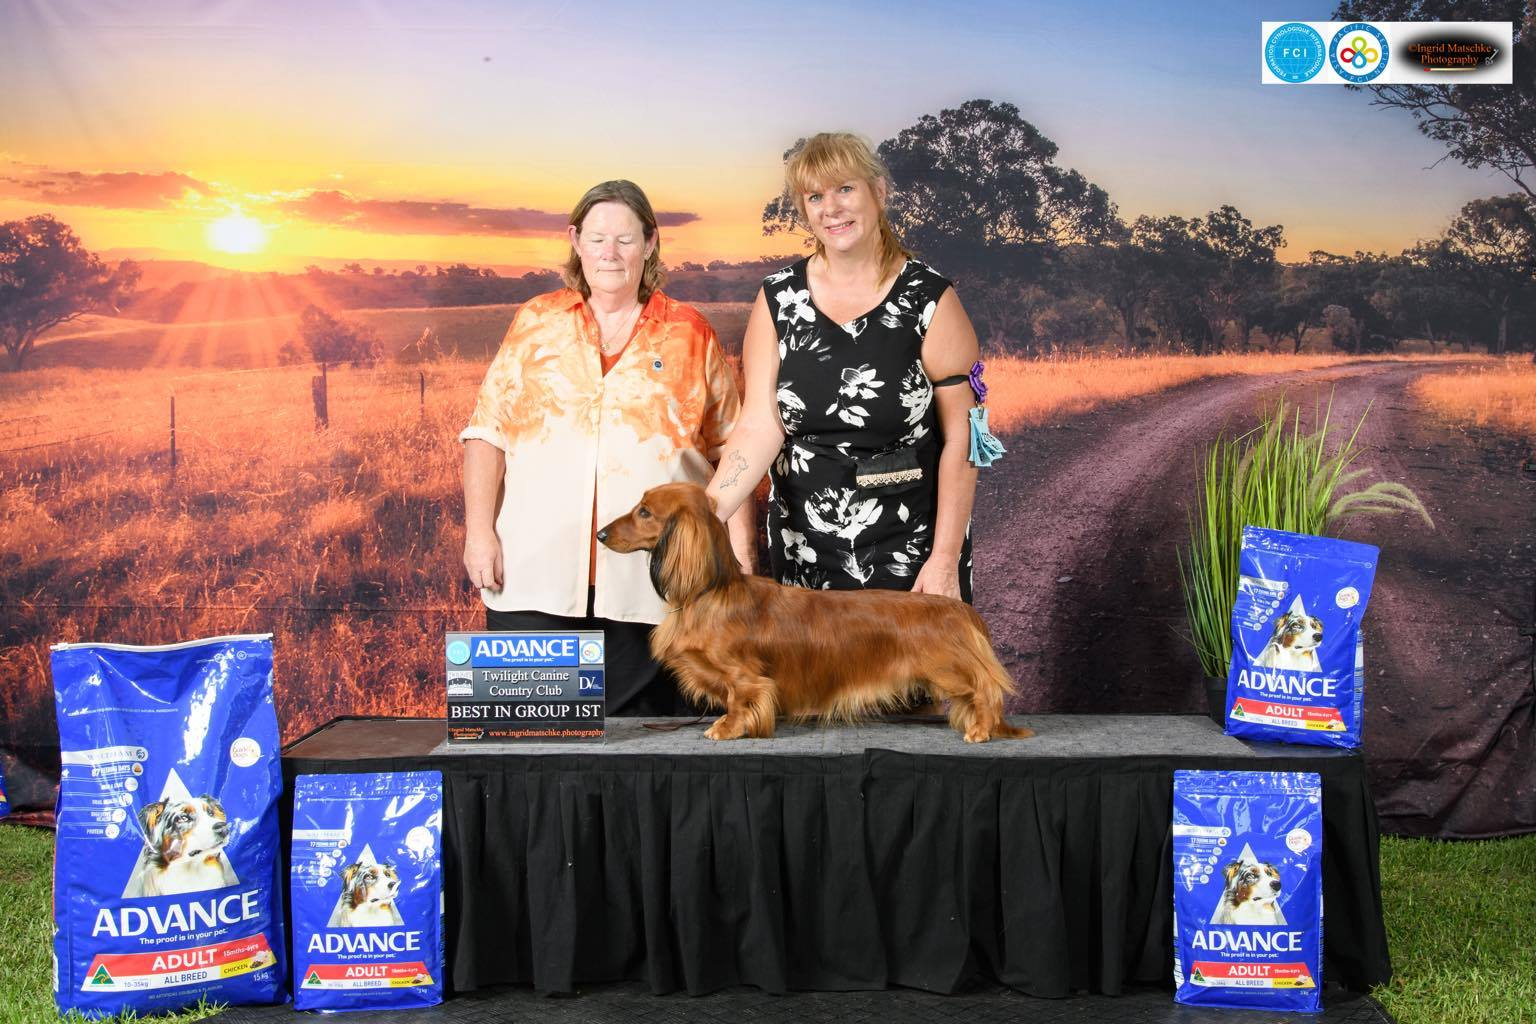 Aust. Ch. Belcara Dare Devil – 'Devil' – Best in Group at the Twilight Country Canine Club FCI All Breeds Championship Show.